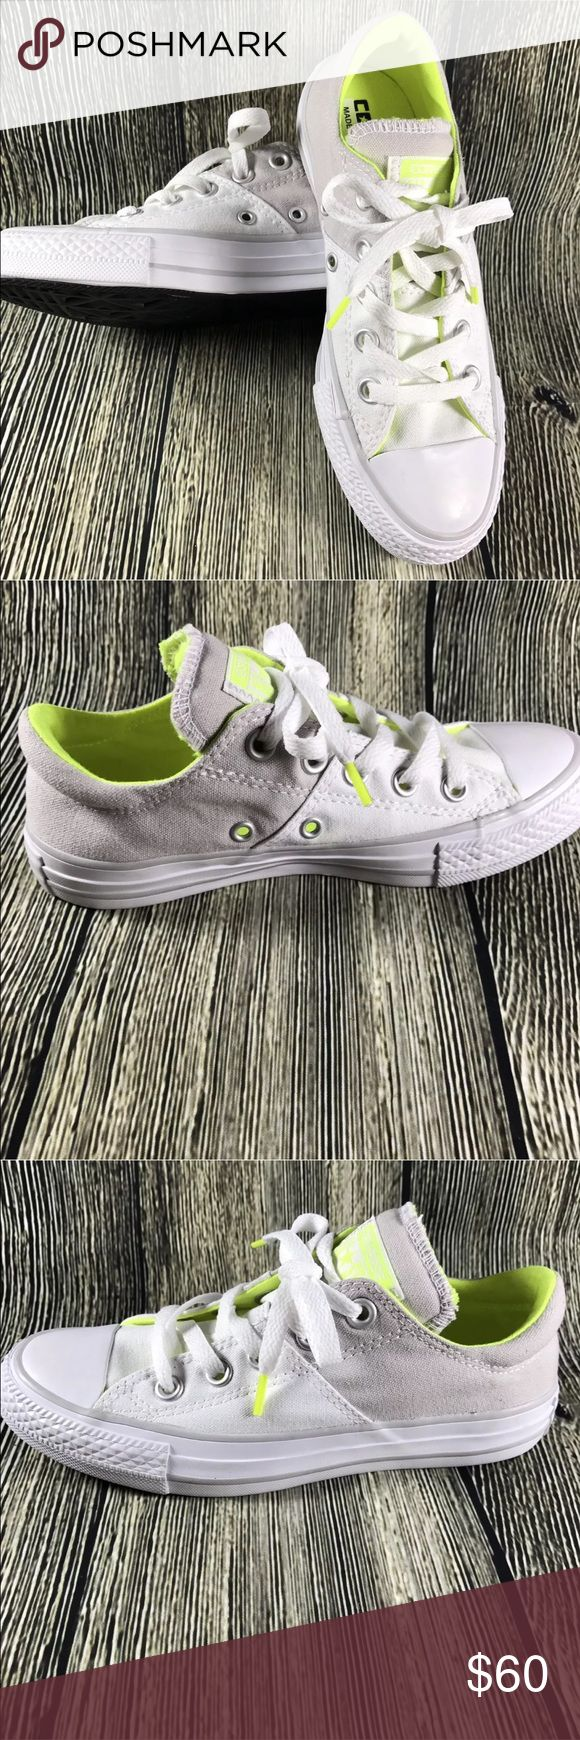 Converse All Star Canvas Lace Up NEW!  Converse All Star  White and Gray  Bright yellow inside and details  Size 5 Converse Shoes Athletic Shoes